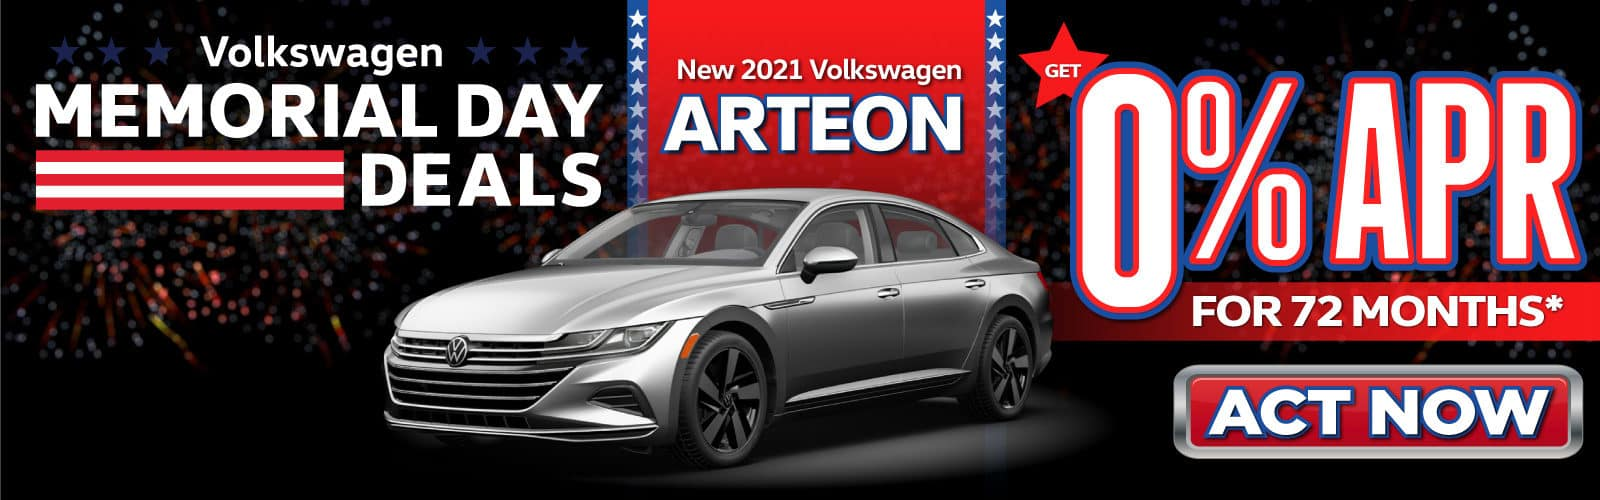 New 2021 VW Arteon - 0% APR for 72 months - Act Now